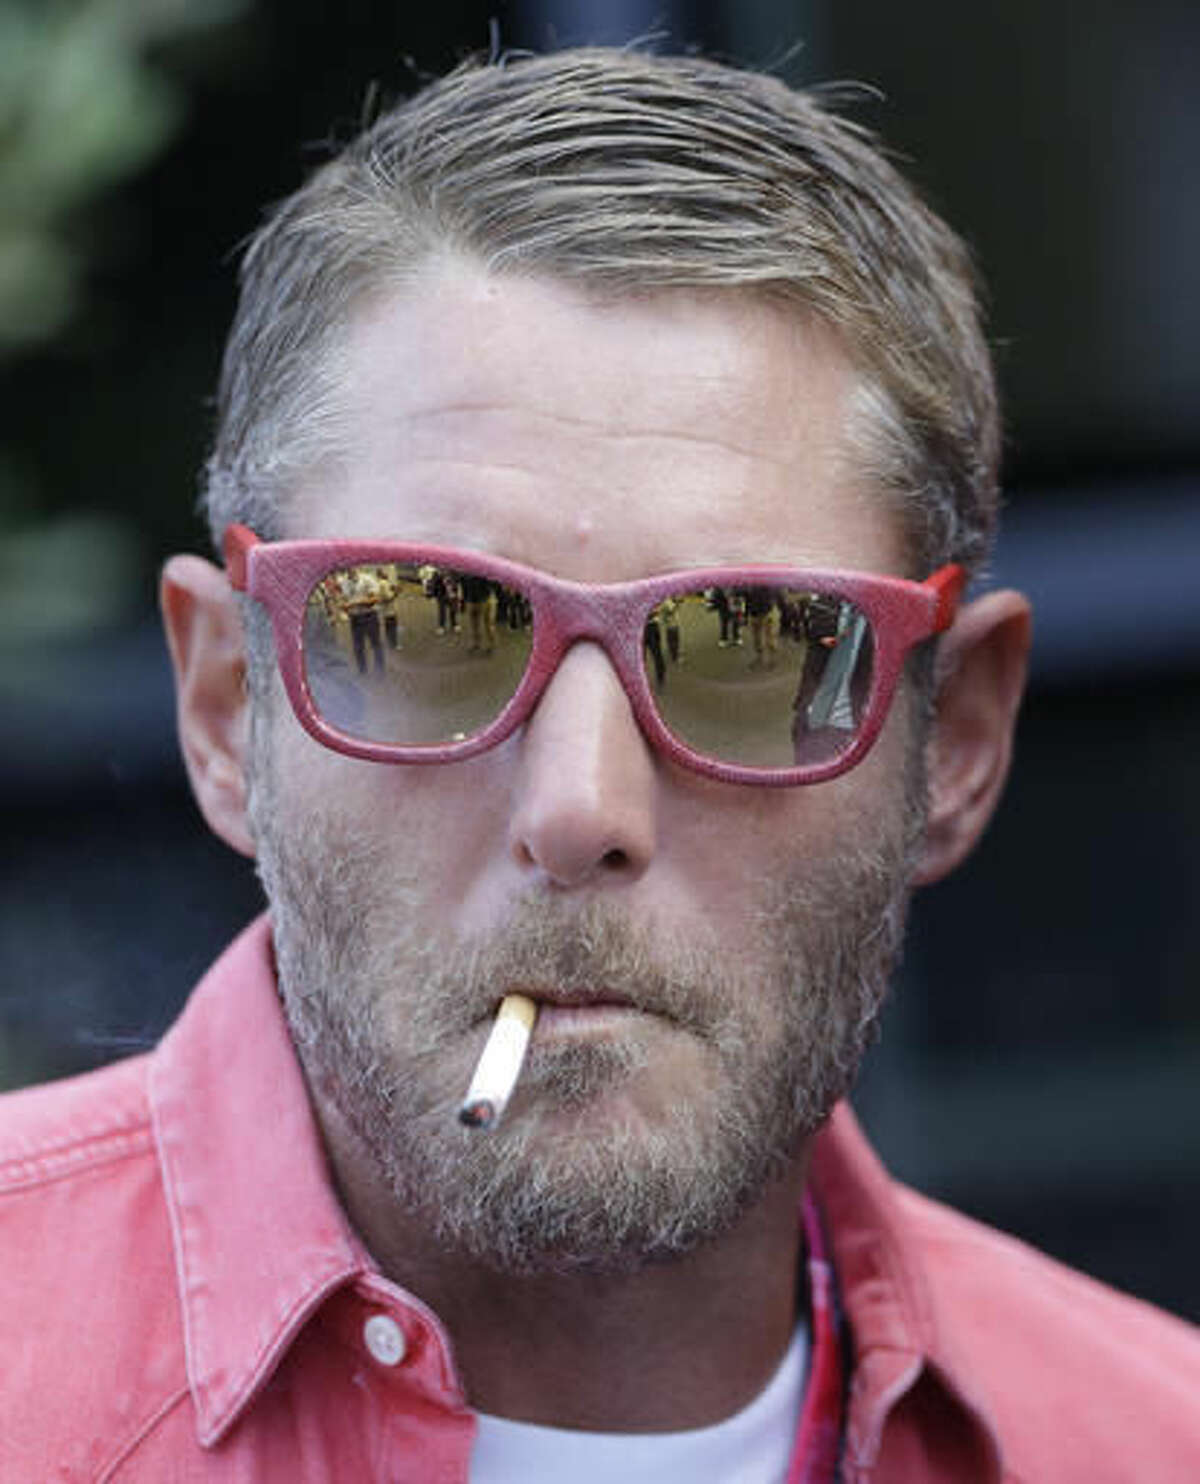 FILE- In this Sept. 5, 2015 file photo, Italian entrepreneur Lapo Elkann smokes prior to the start of the third practice session for Sunday's Formula One Italian Grand Prix, at the Monza racetrack, Italy. Police in New York City say the grandson of the Italian founder of Fiat Automobiles was arrested on Saturday, Nov. 26, 2016, after falsely claiming an escort held him against his will. (AP Photo/Luca Bruno, File)